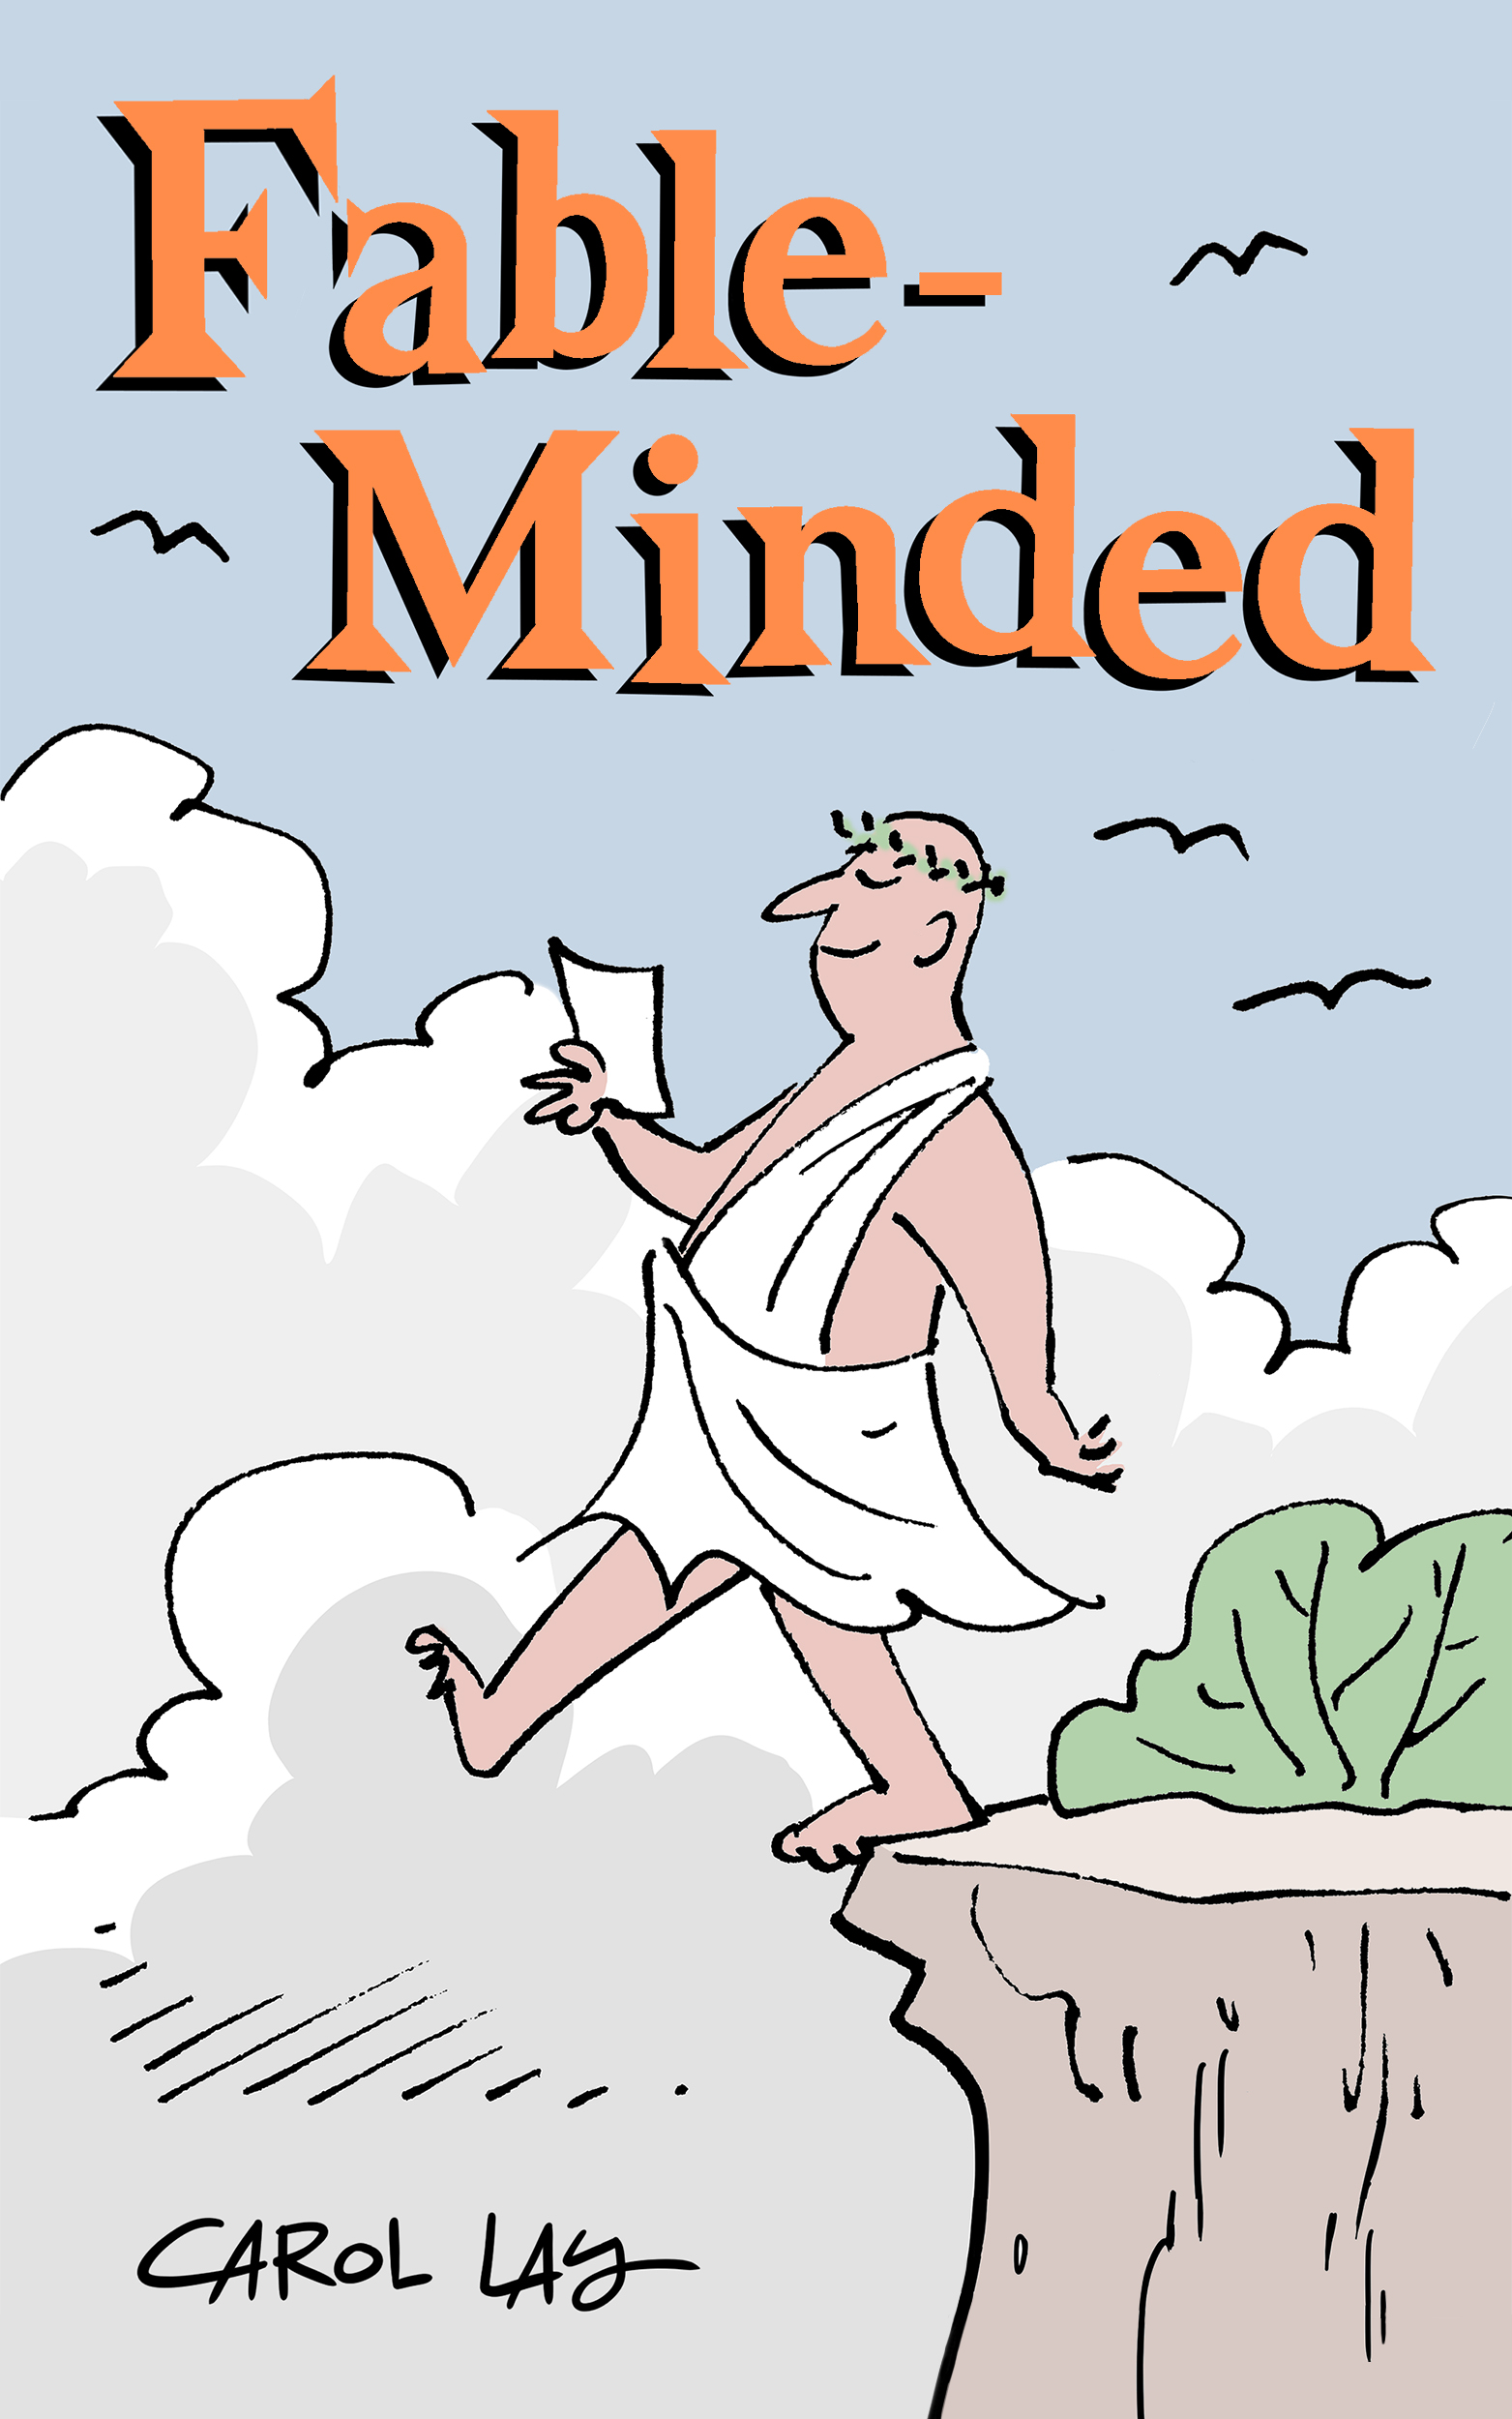 Fable-Minded - A color collection of various weekly strips inspired by myths, fables, and fairy tales, formatted for digital devices. 53 pages from Waylay Books, 2016.